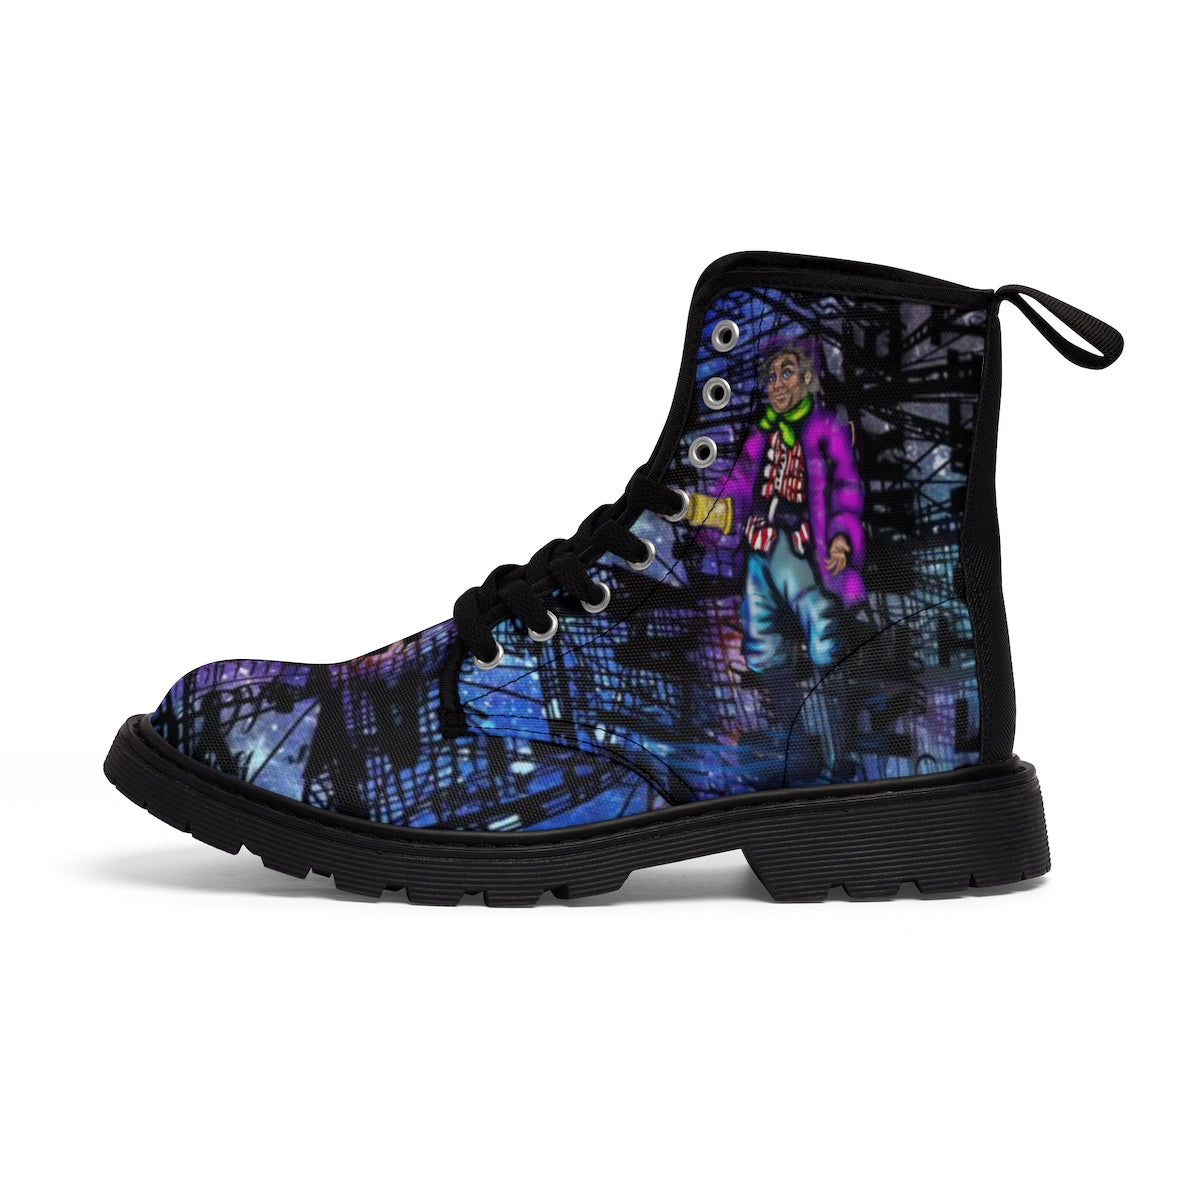 Captain Hook & Smee Men's Canvas Boots-Starry Meadows